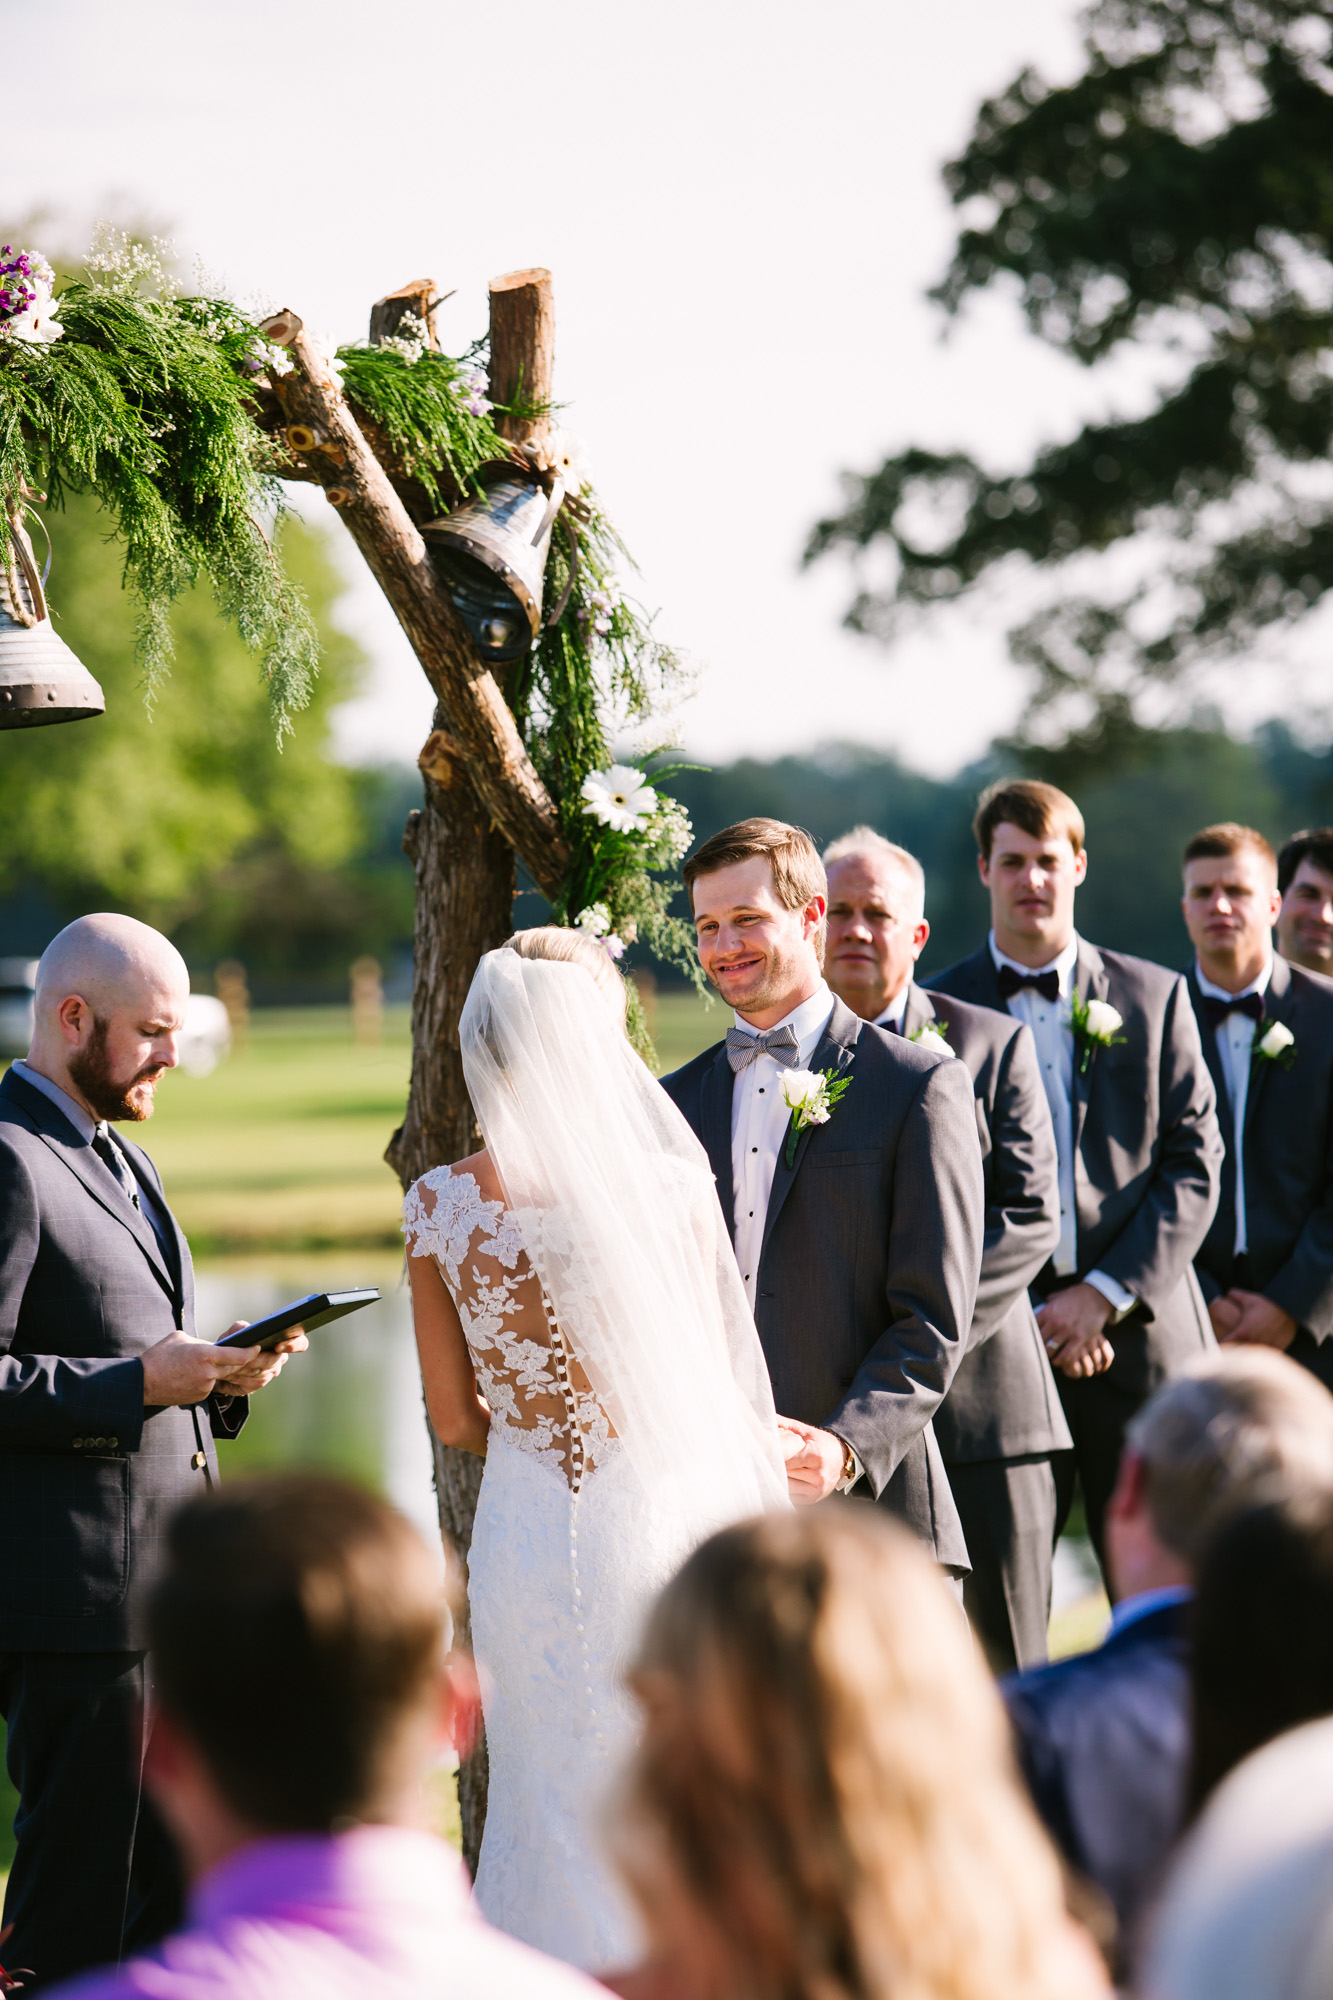 Waynesville, NC Wedding Photography | Wedding Ceremony Groom Smiling